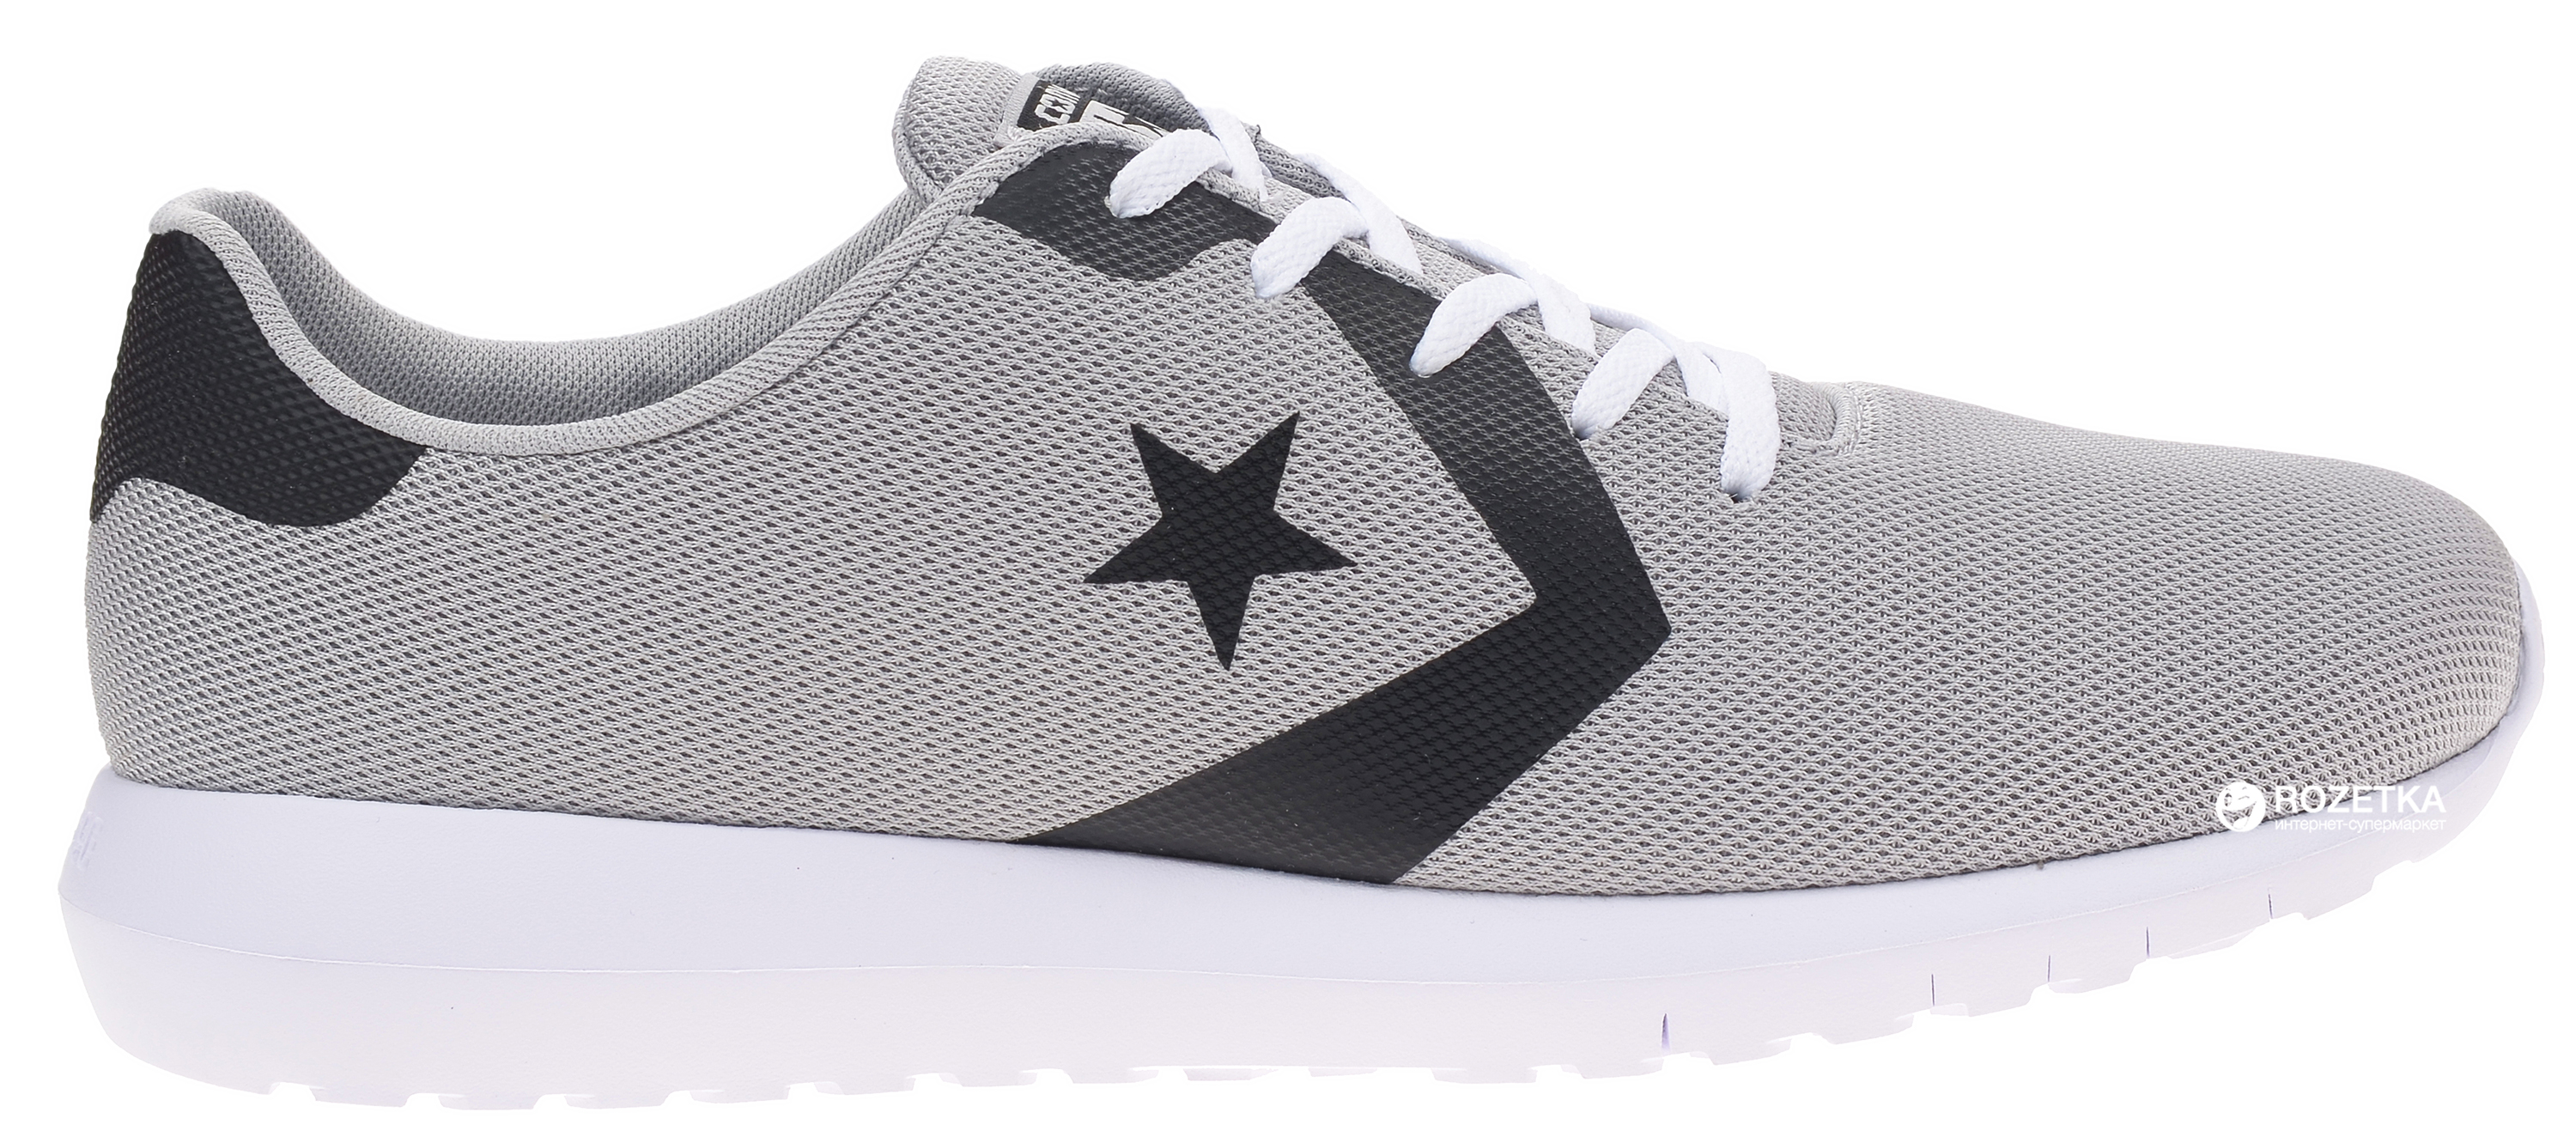 2converse auckland 44.5